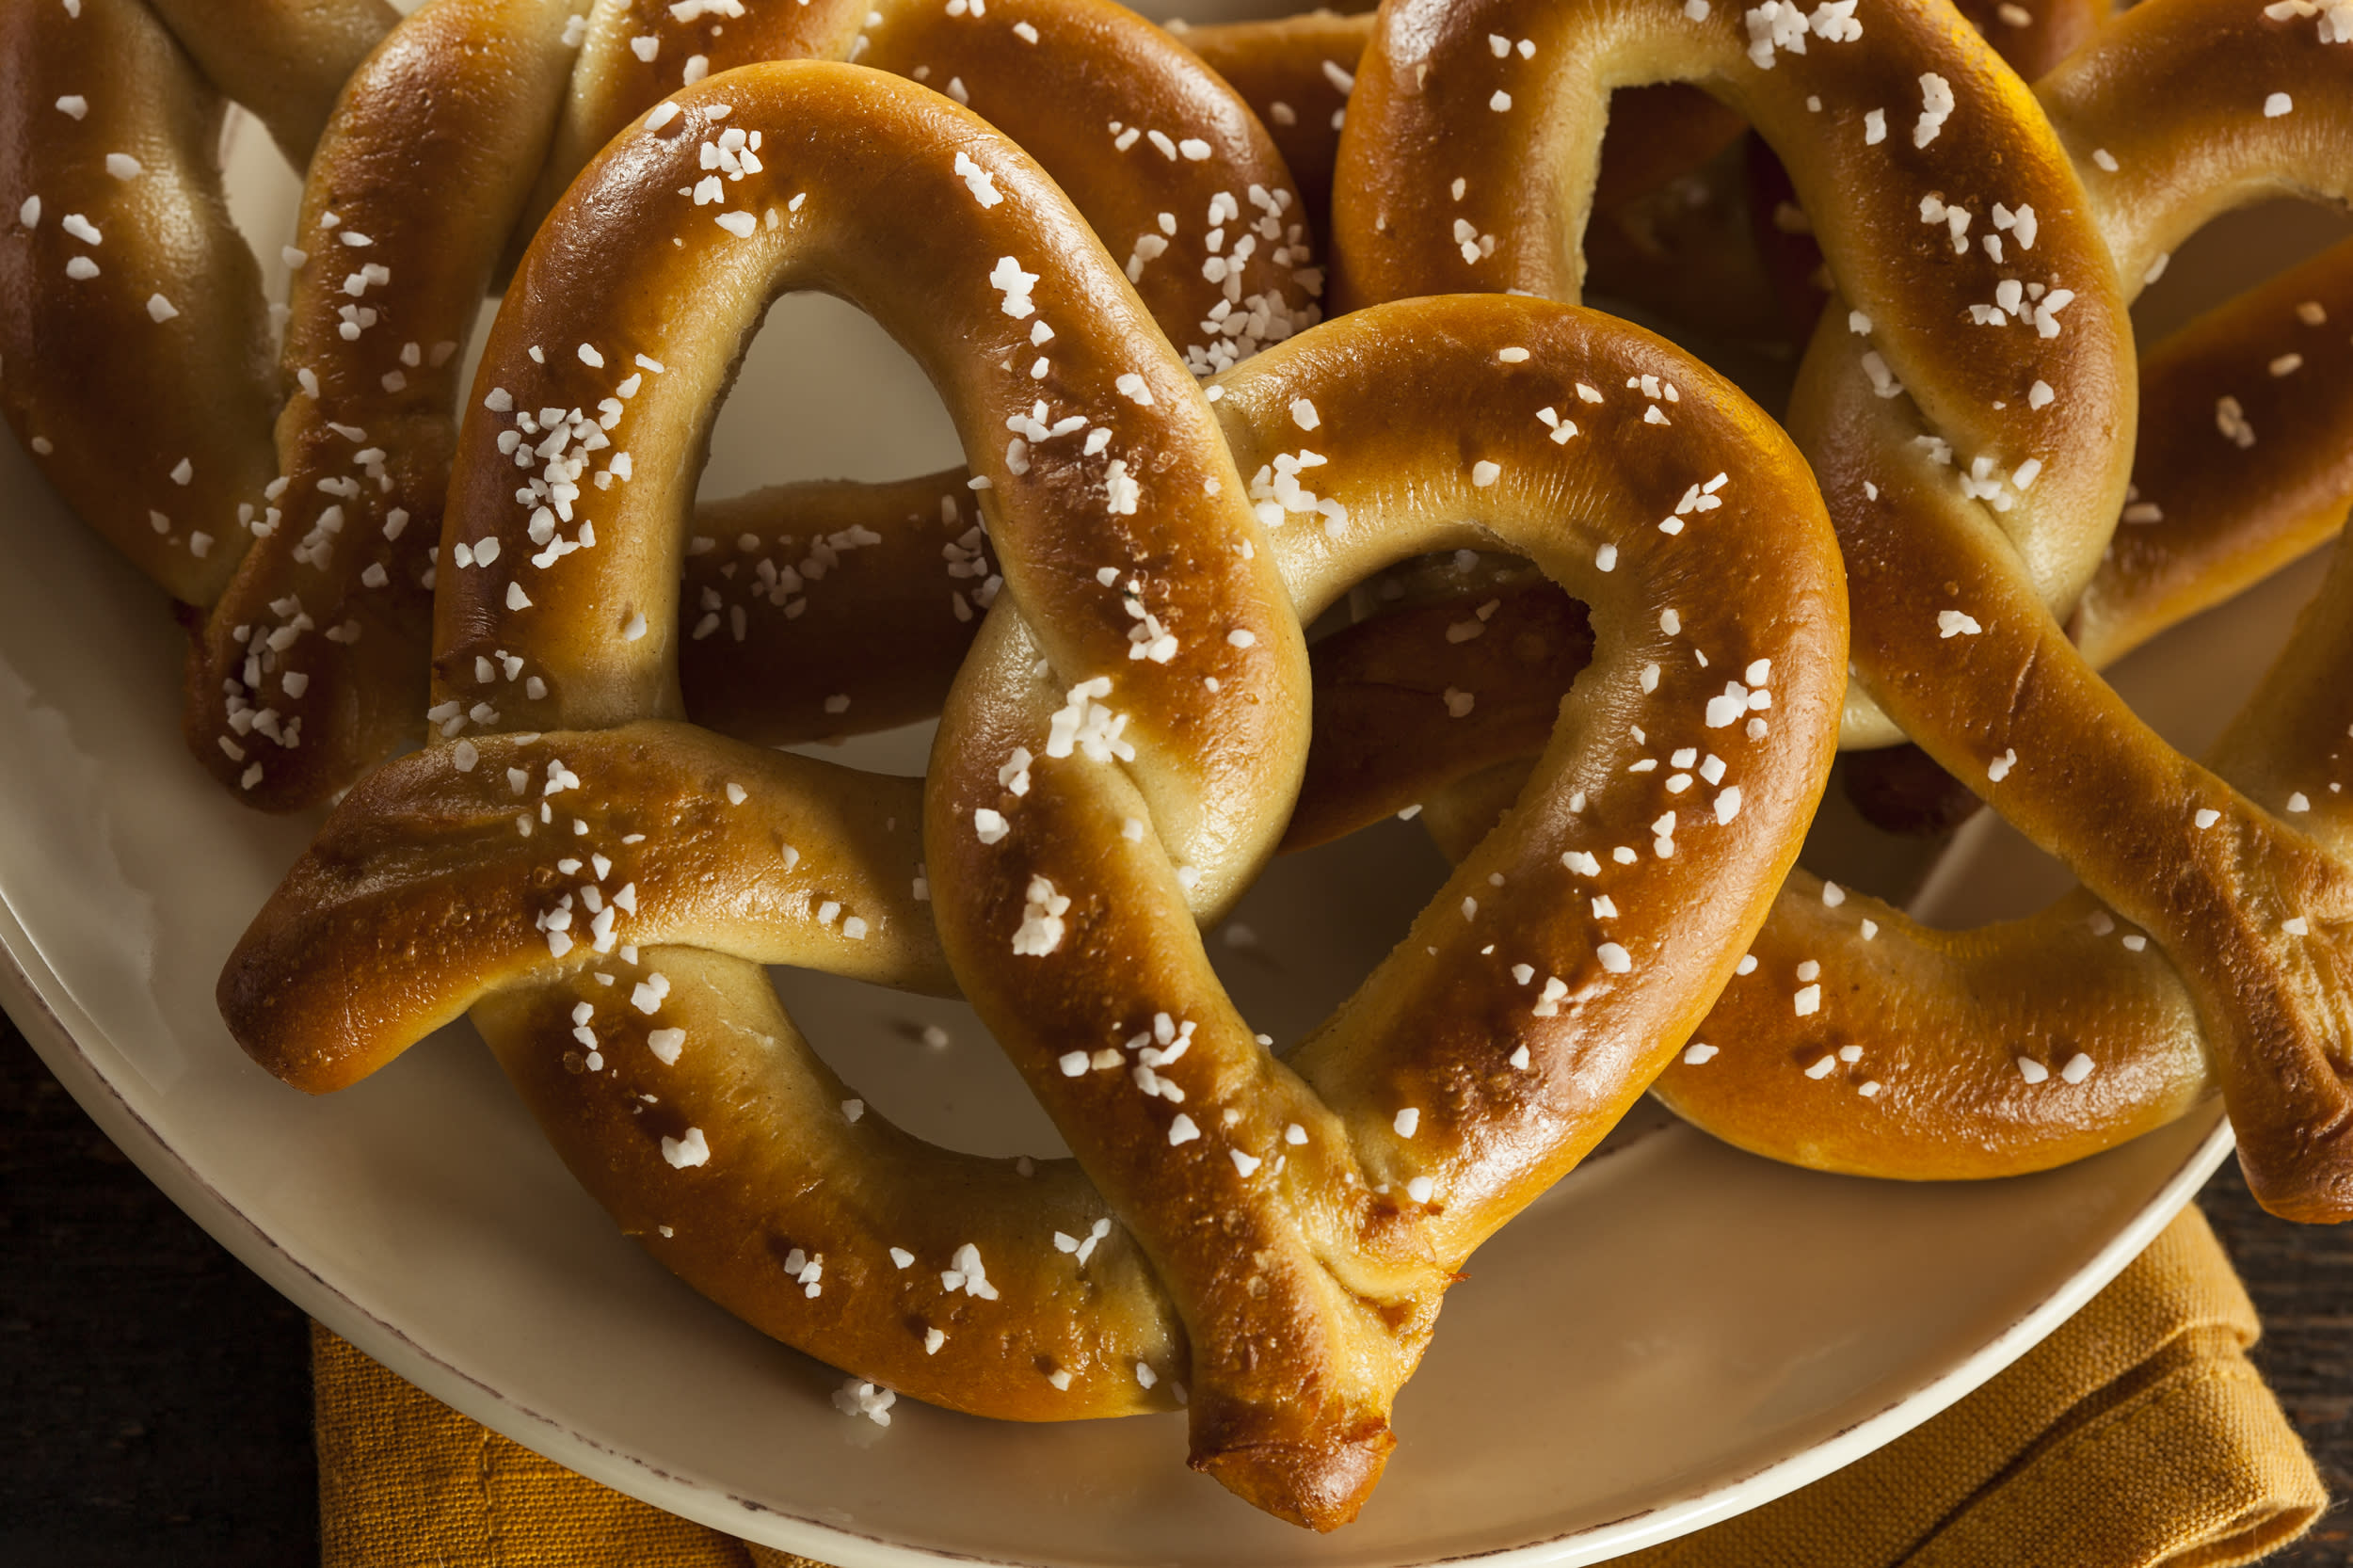 """<p><strong>Soft pretzels</strong></p>  <p>""""A big old soft pretzel is not a meal,"""" says registered dietitian Marjorie Nolan Cohn, owner of MNC Nutrition in Philadelphia. Those fluffy carbs might smell enticing, but carbo-loading before a long flight will leave your tummy rumbling again by takeoff. Look for something with protein and fiber that will keep you satisfied until you land, or better yet, pack a meal from home. Nolan Cohn recommends making a sandwich at home to save money or packing leftovers like pasta salad or grilled chicken in an old, washed plastic container, such as a cottage cheese tub.</p>  <p>(Getty)</p>"""